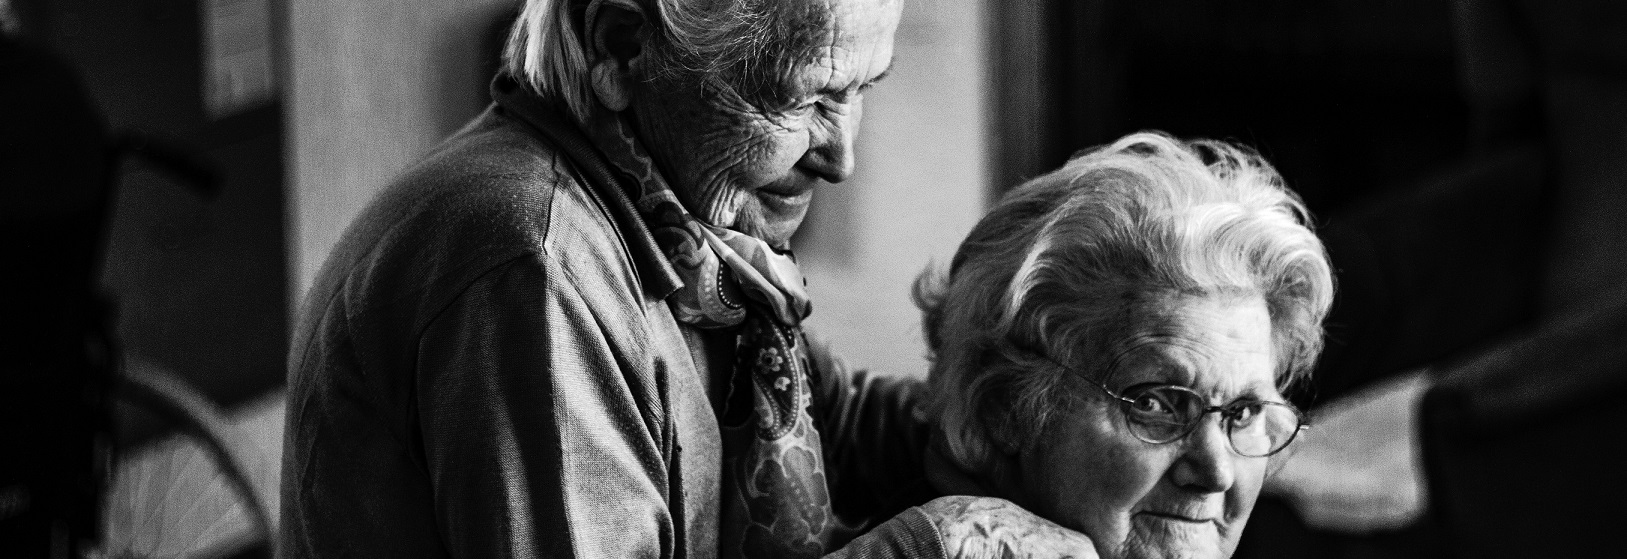 Two_older_Women-Photo_by_Eberhard_Grossgasteiger_on_Unsplash-cropped